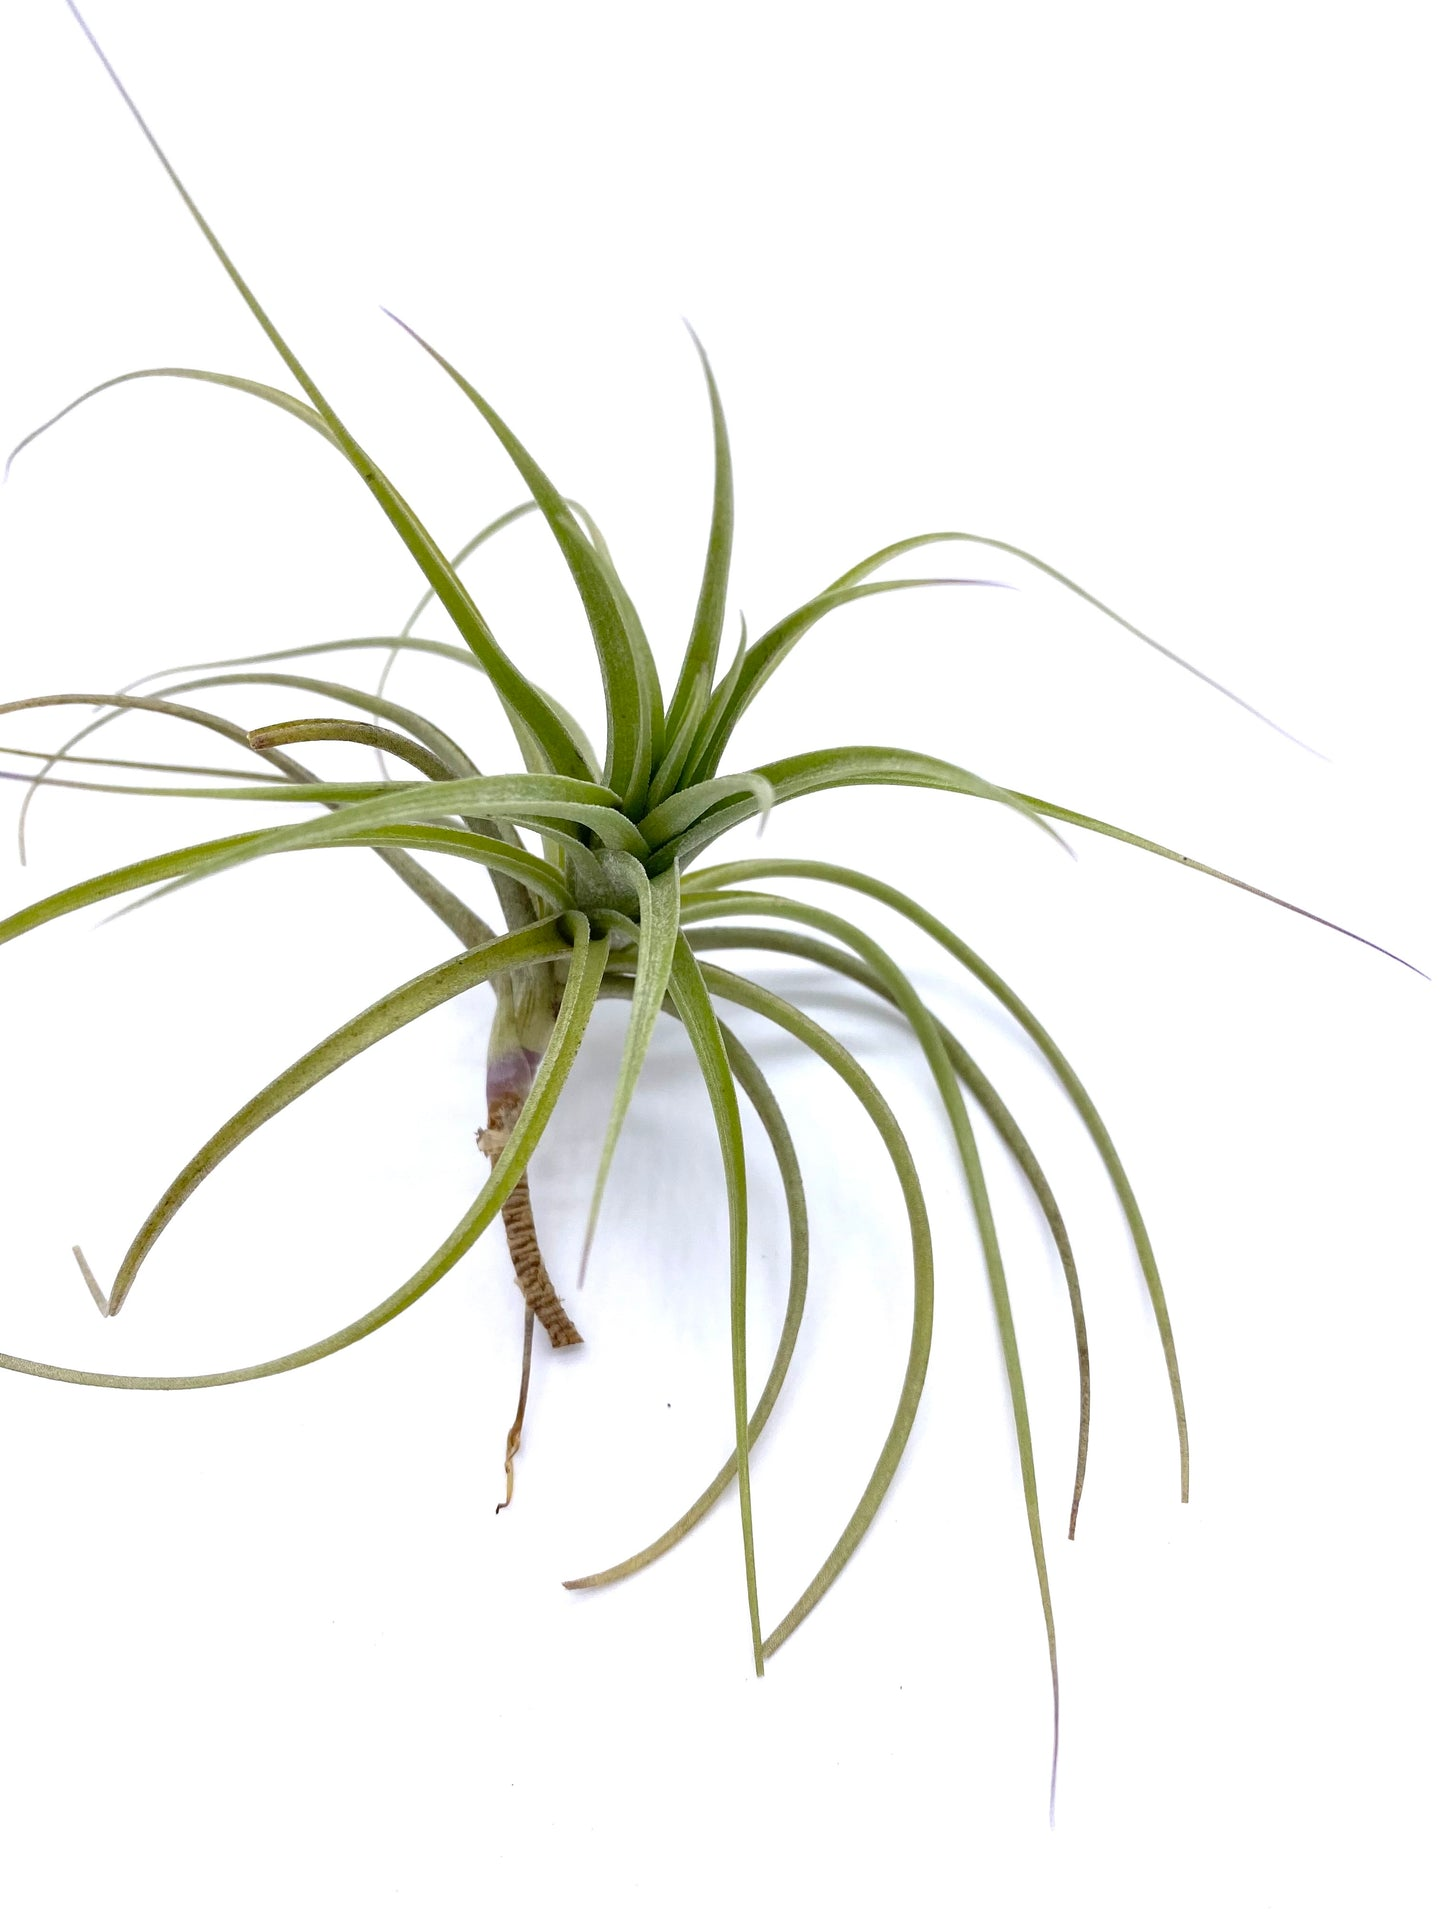 Tillandsia bergeri - Medium